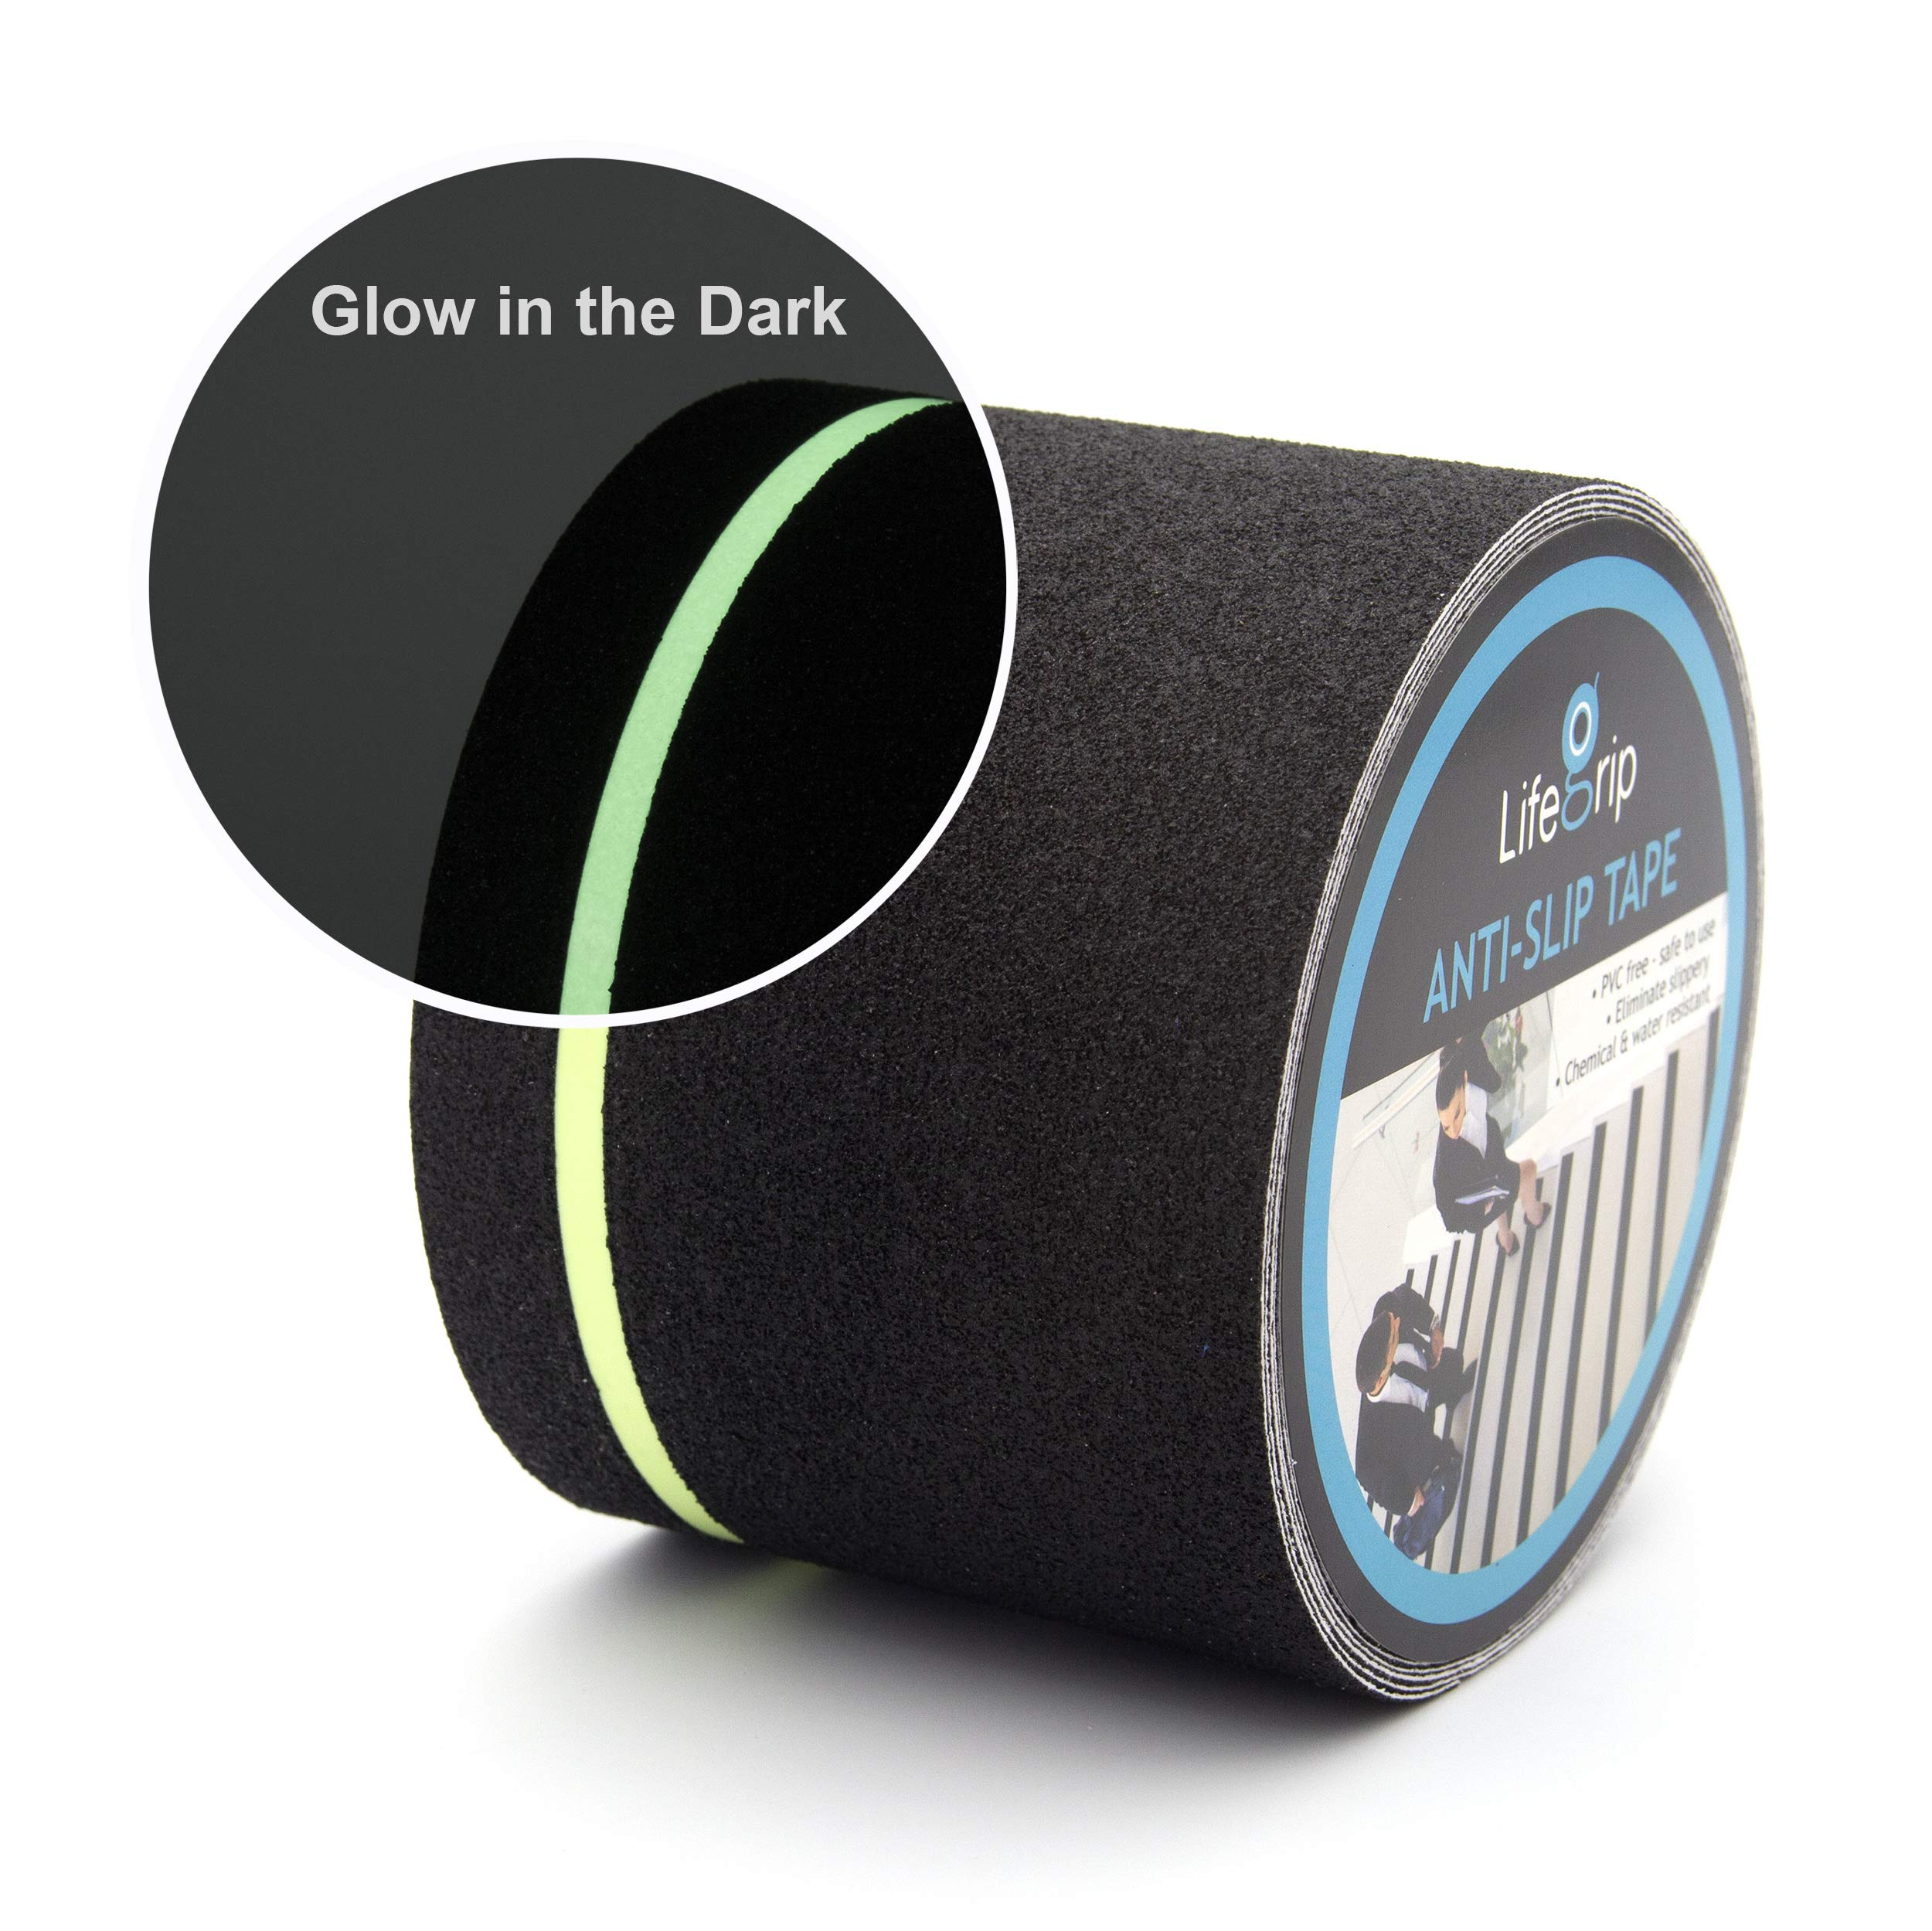 Anti Slip Traction Tape with Glow in Dark Green Stripe, 4 Inch x 30 Foot - Best Grip, Friction, Abrasive Adhesive for Stairs, Tread Step, Indoor, Outdoor, Black (4 inch X 30 feet Tape) by LifeGrip Stay on Track